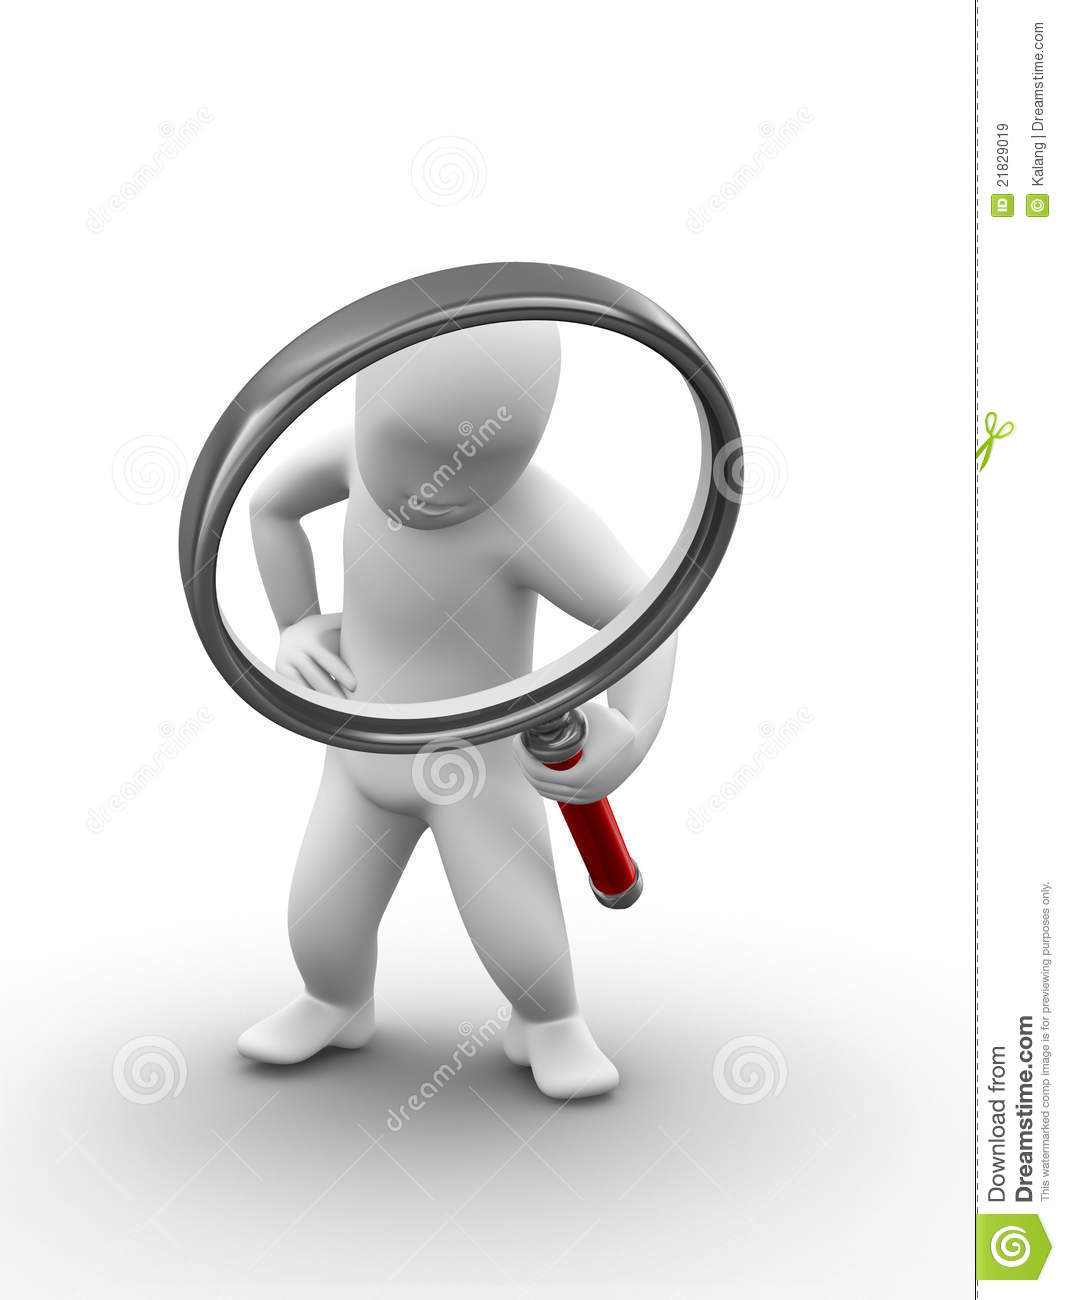 3d Man With Glass Search Something Royalty Free Stock Images - Image ...: www.dreamstime.com/royalty-free-stock-images-3d-man-glass-something...